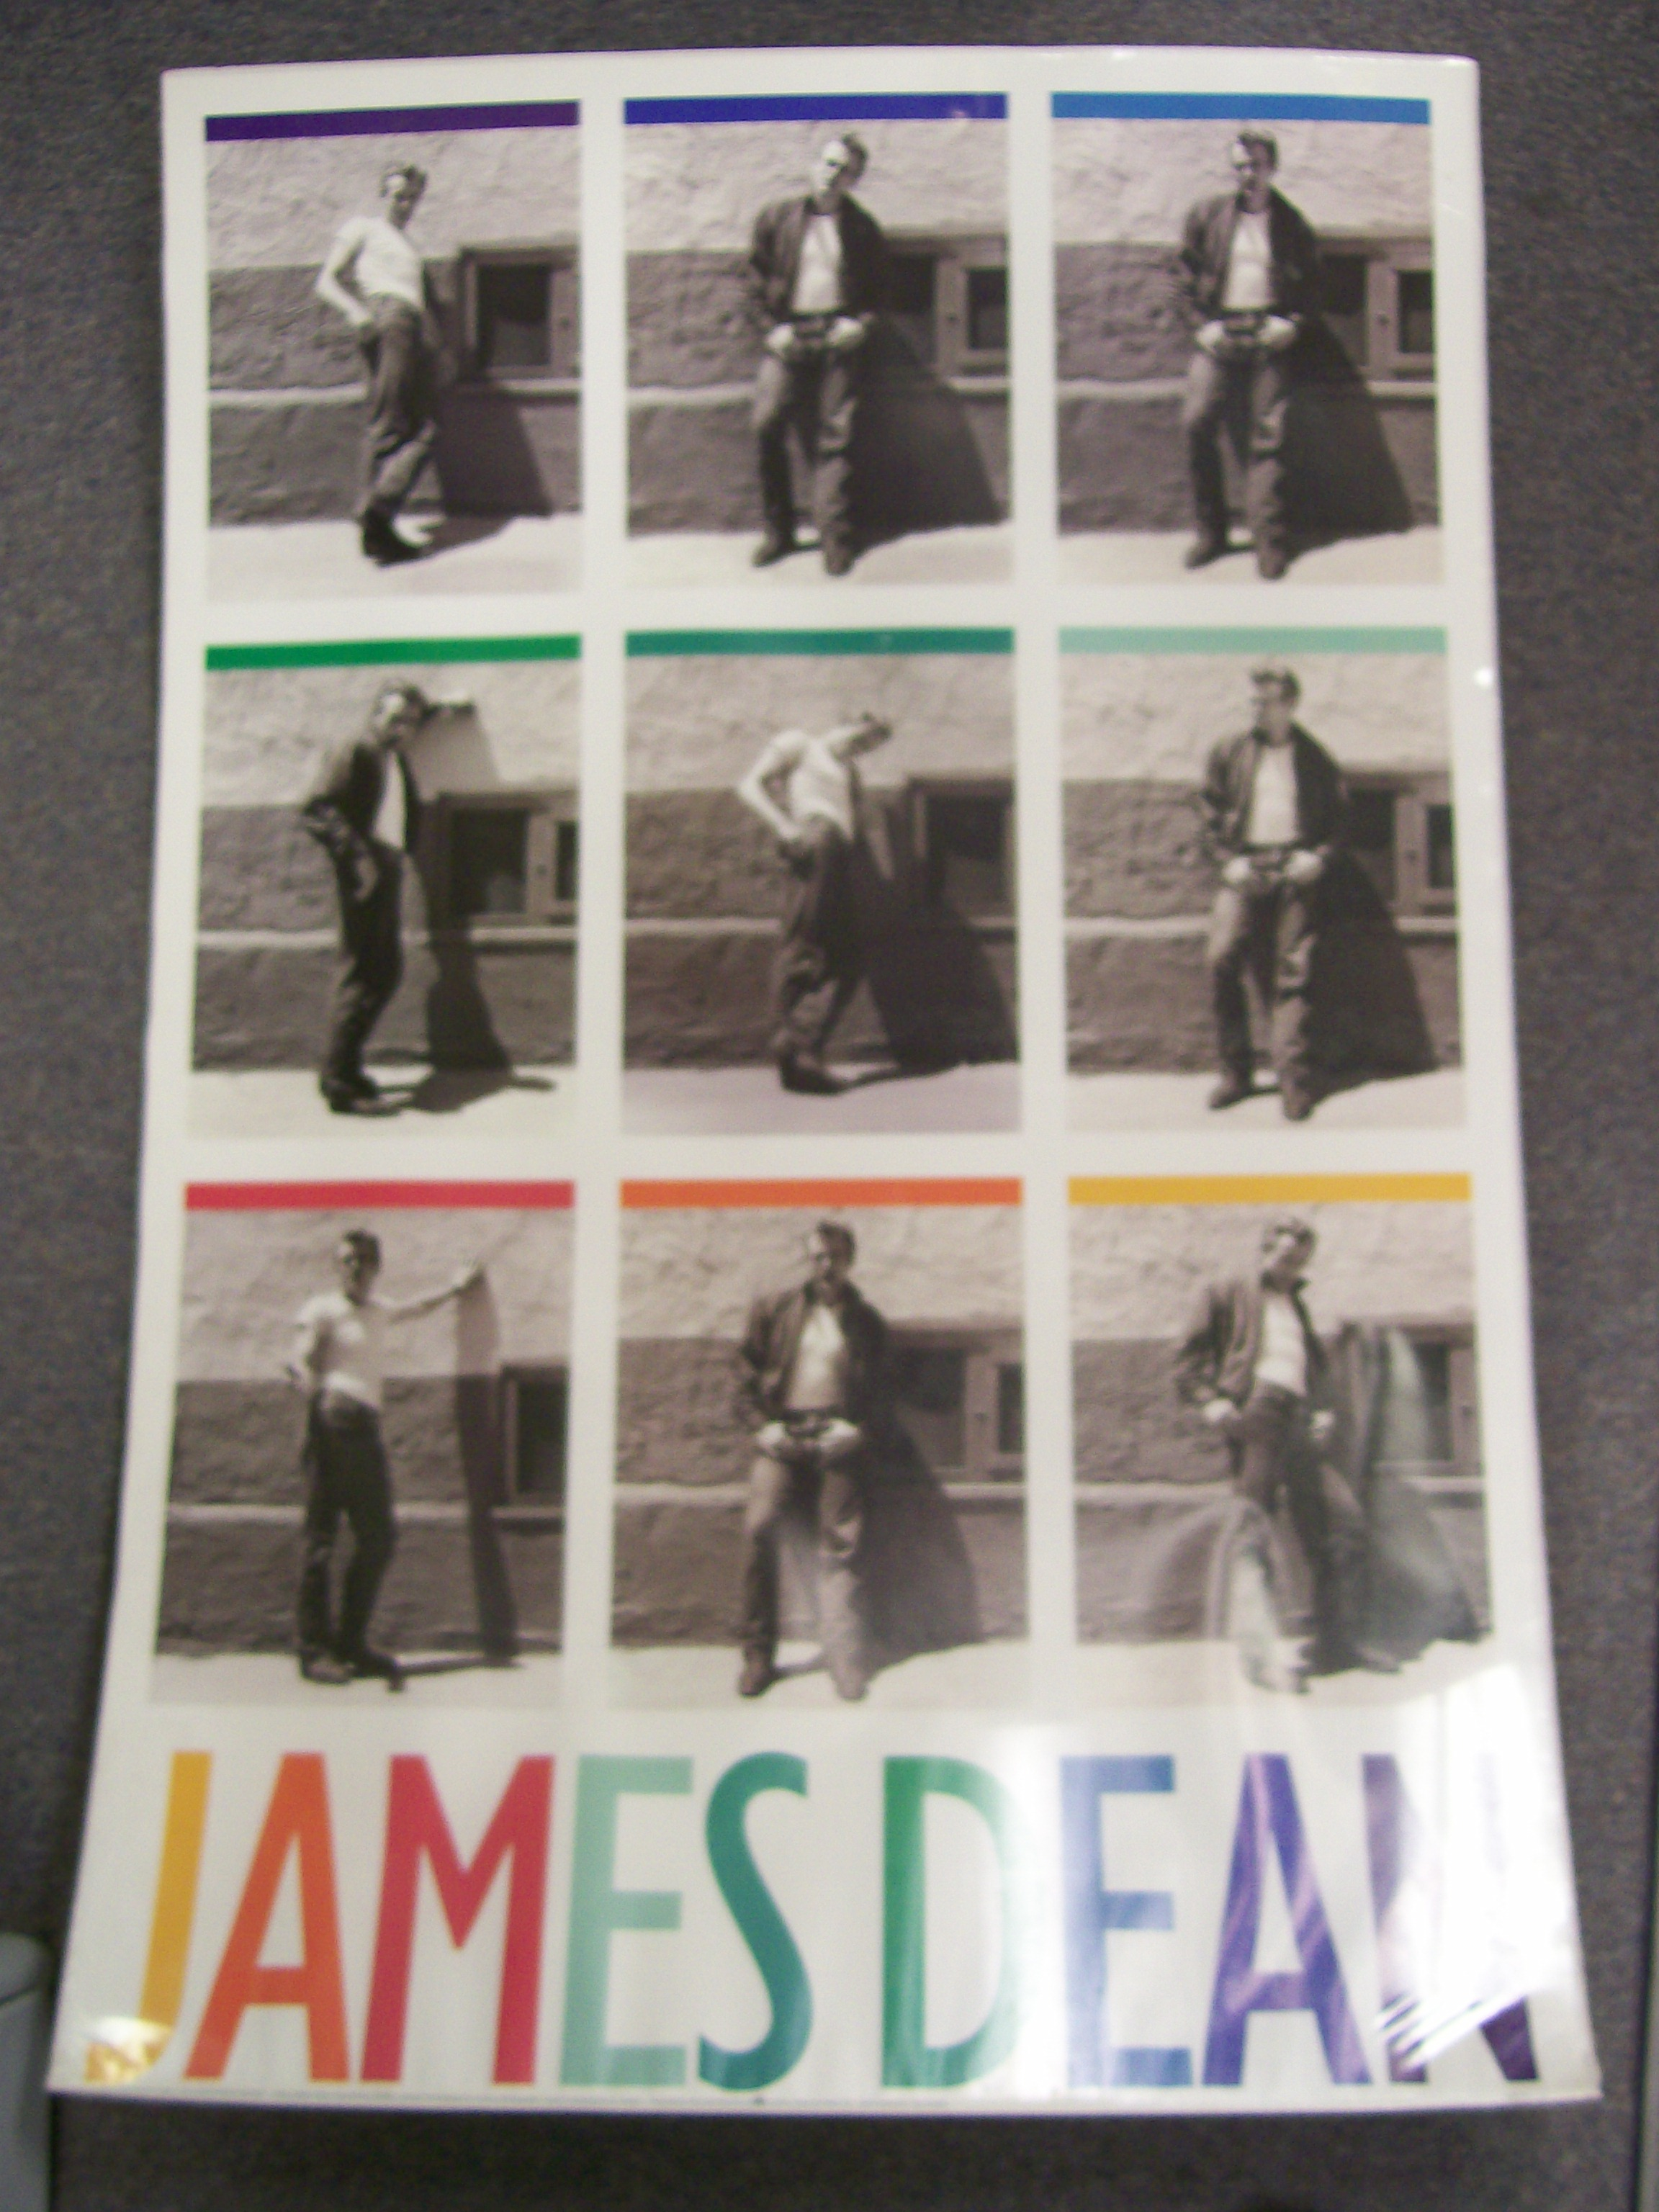 "James Dean Large 24"" X 36"" Poster 9 Different Poses 1992 JDF"